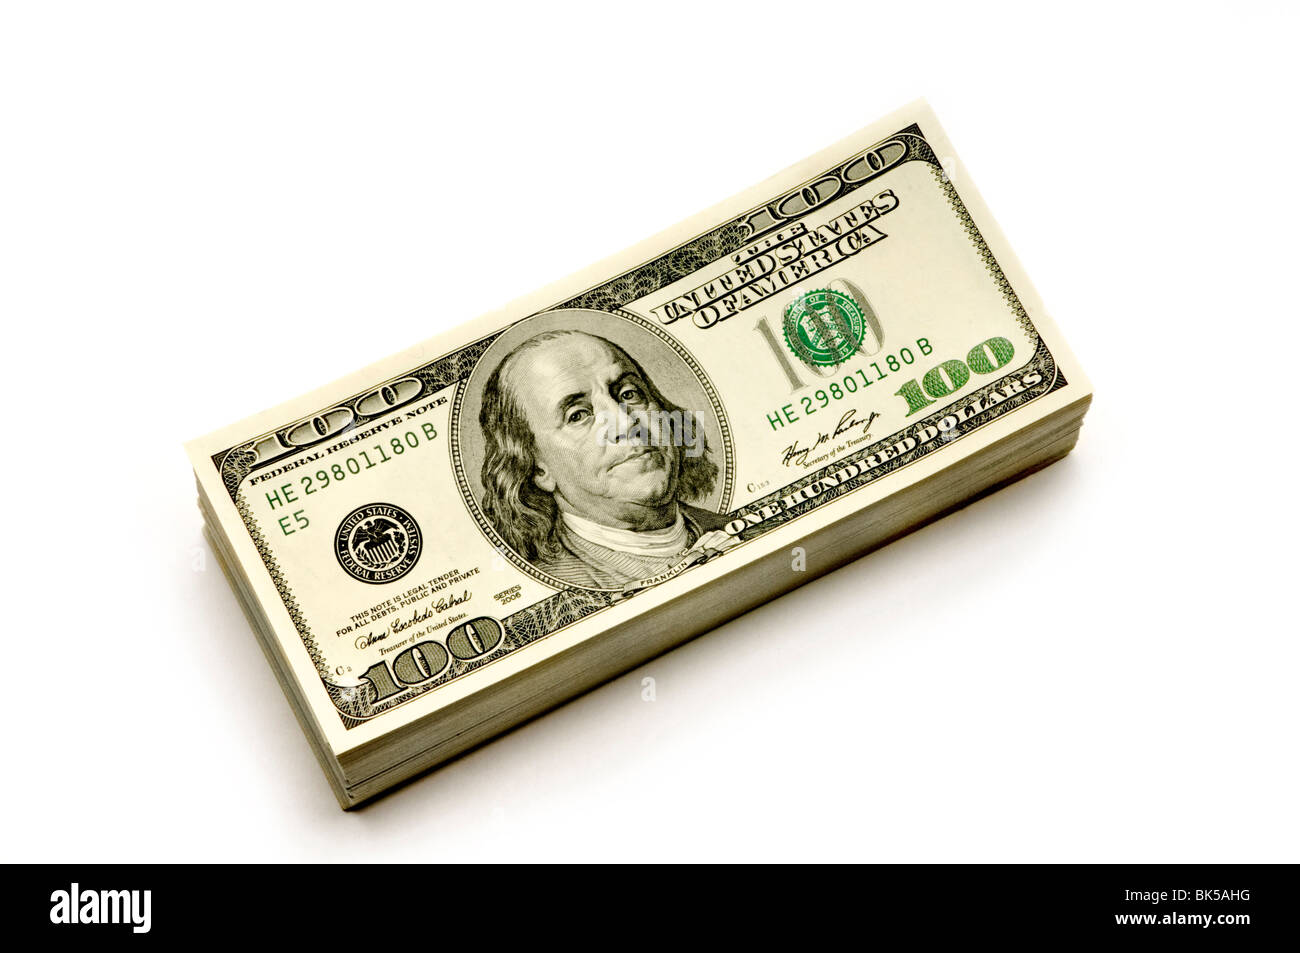 stack of American Dollars, money, currency on white background - Stock Image